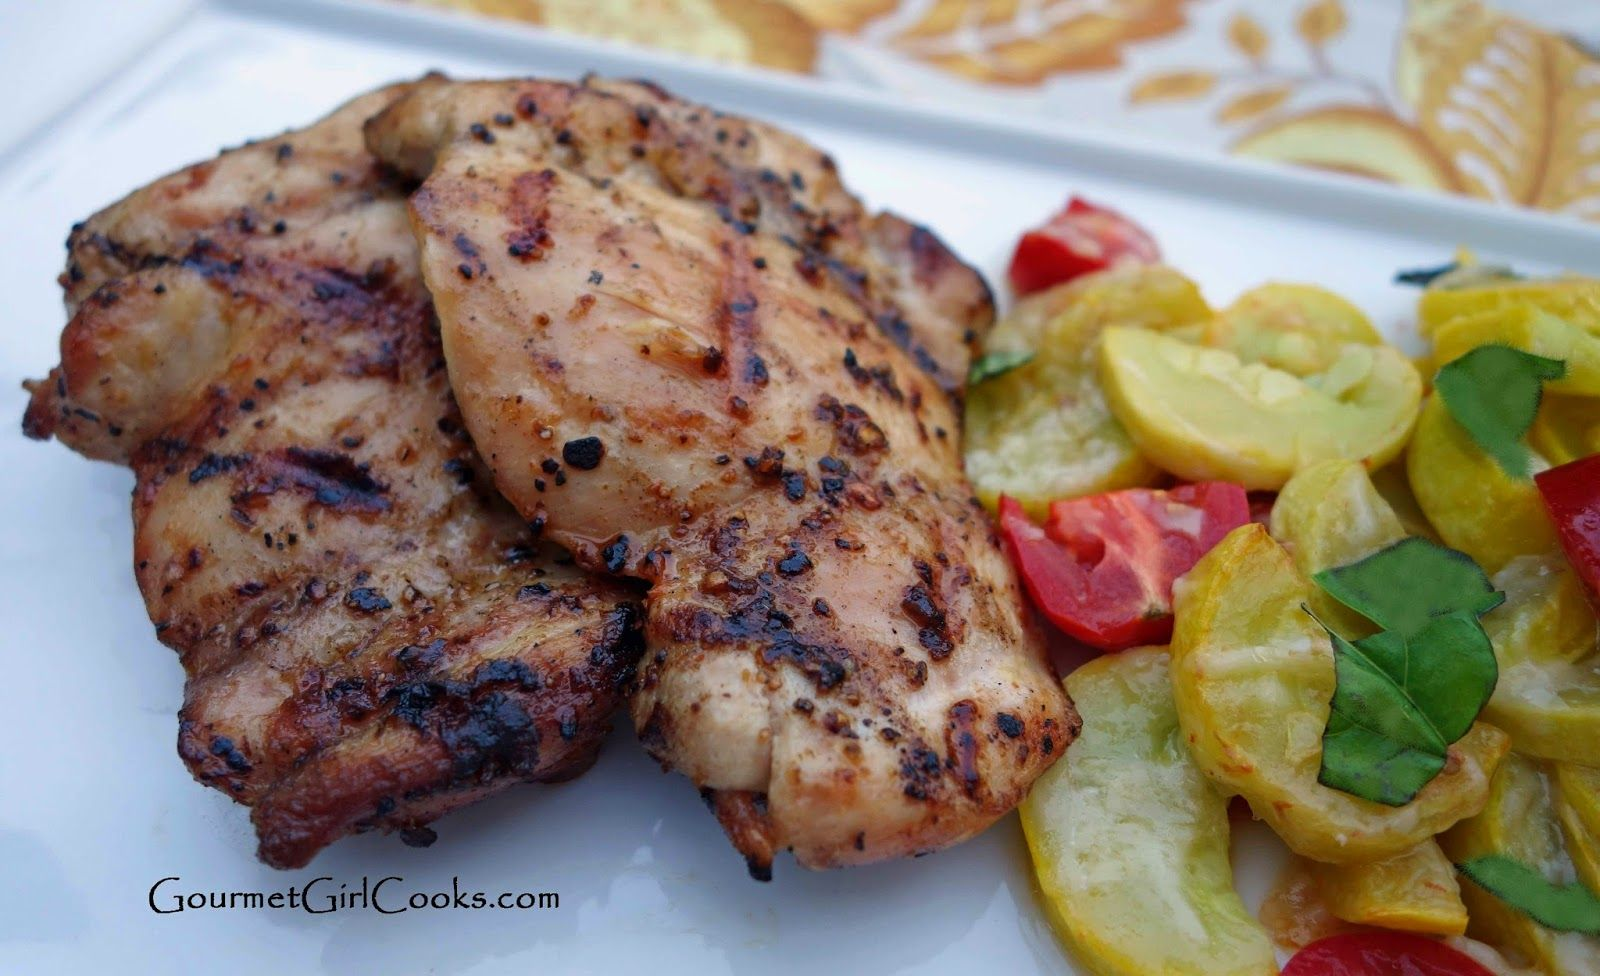 Gourmet Girl Cooks: Grilled Spice Rubbed Chicken & Summer Squash Tomato Medley